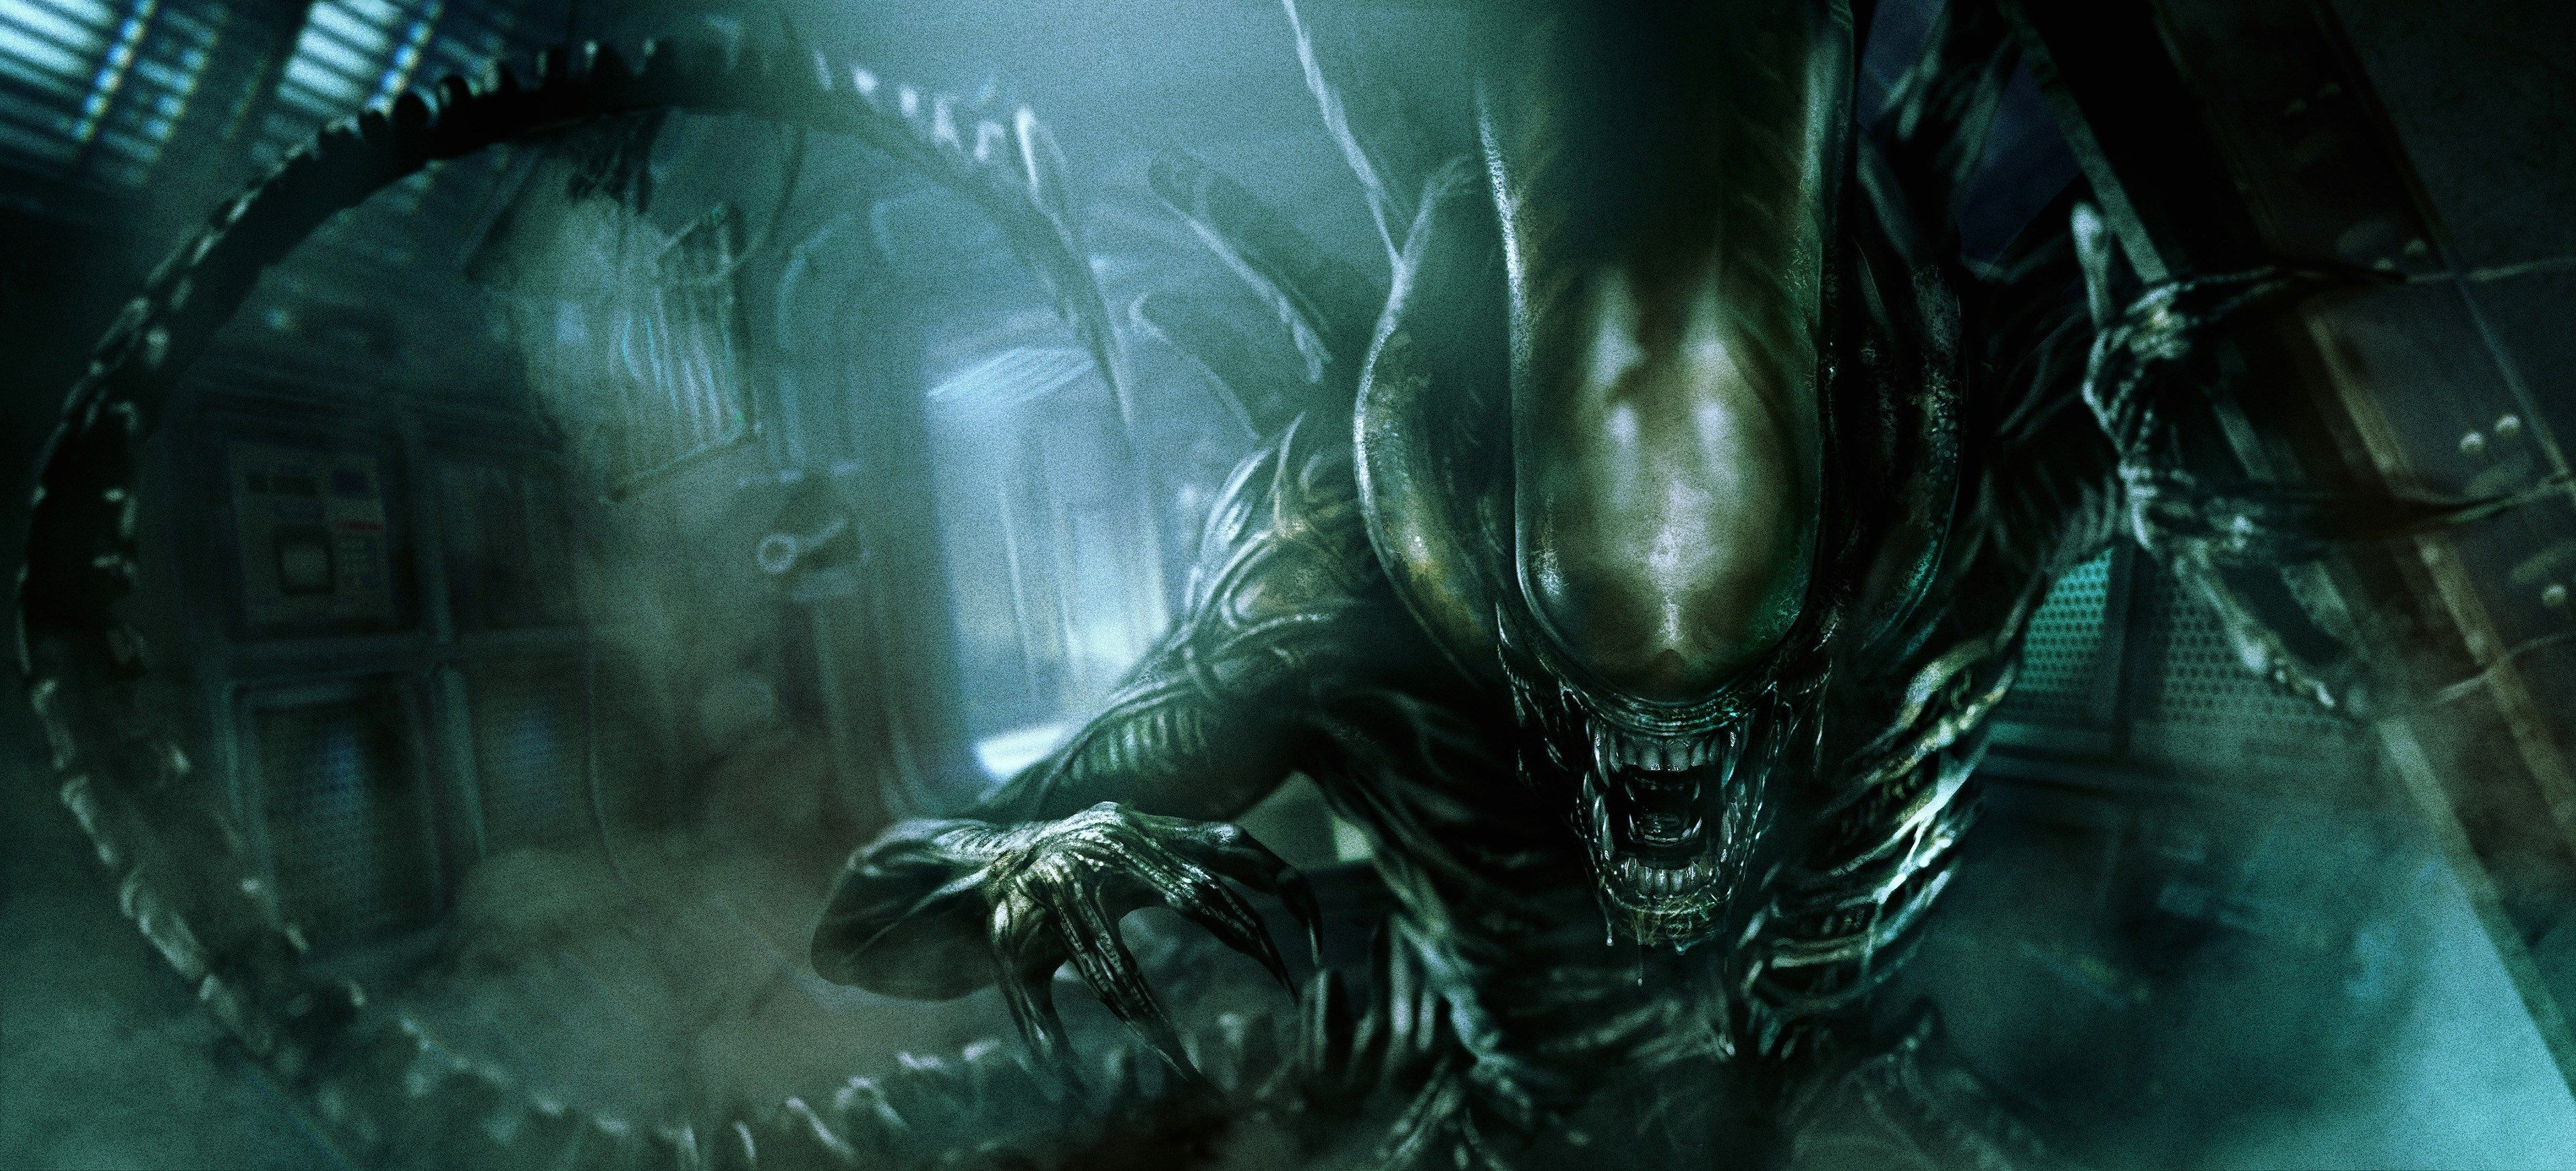 3840x1745 Alien 4k Free Pc Hd Wallpaper Xenomorph Alien Artwork Alien